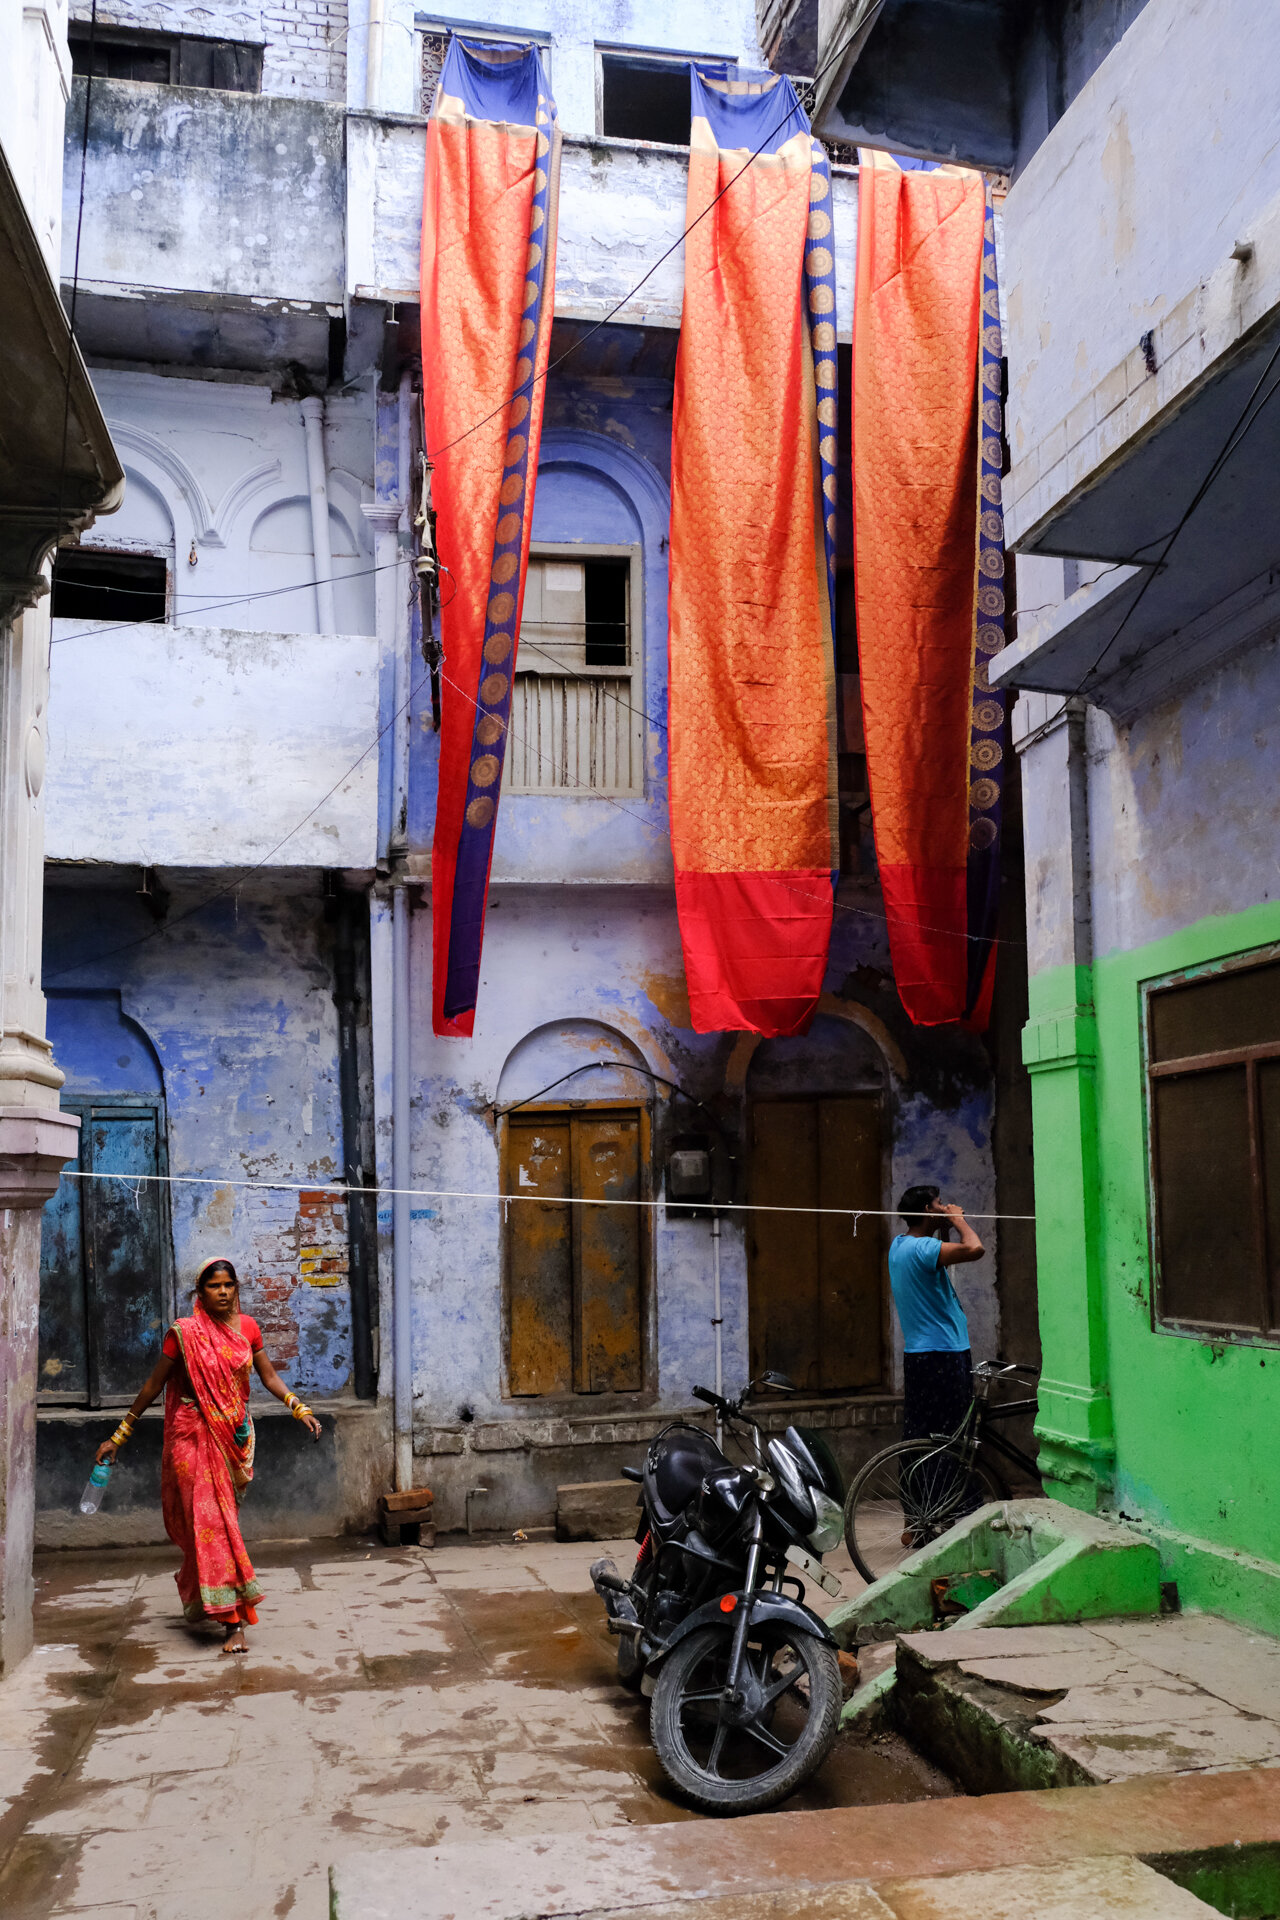 The finished silk saris' hang out to dry.